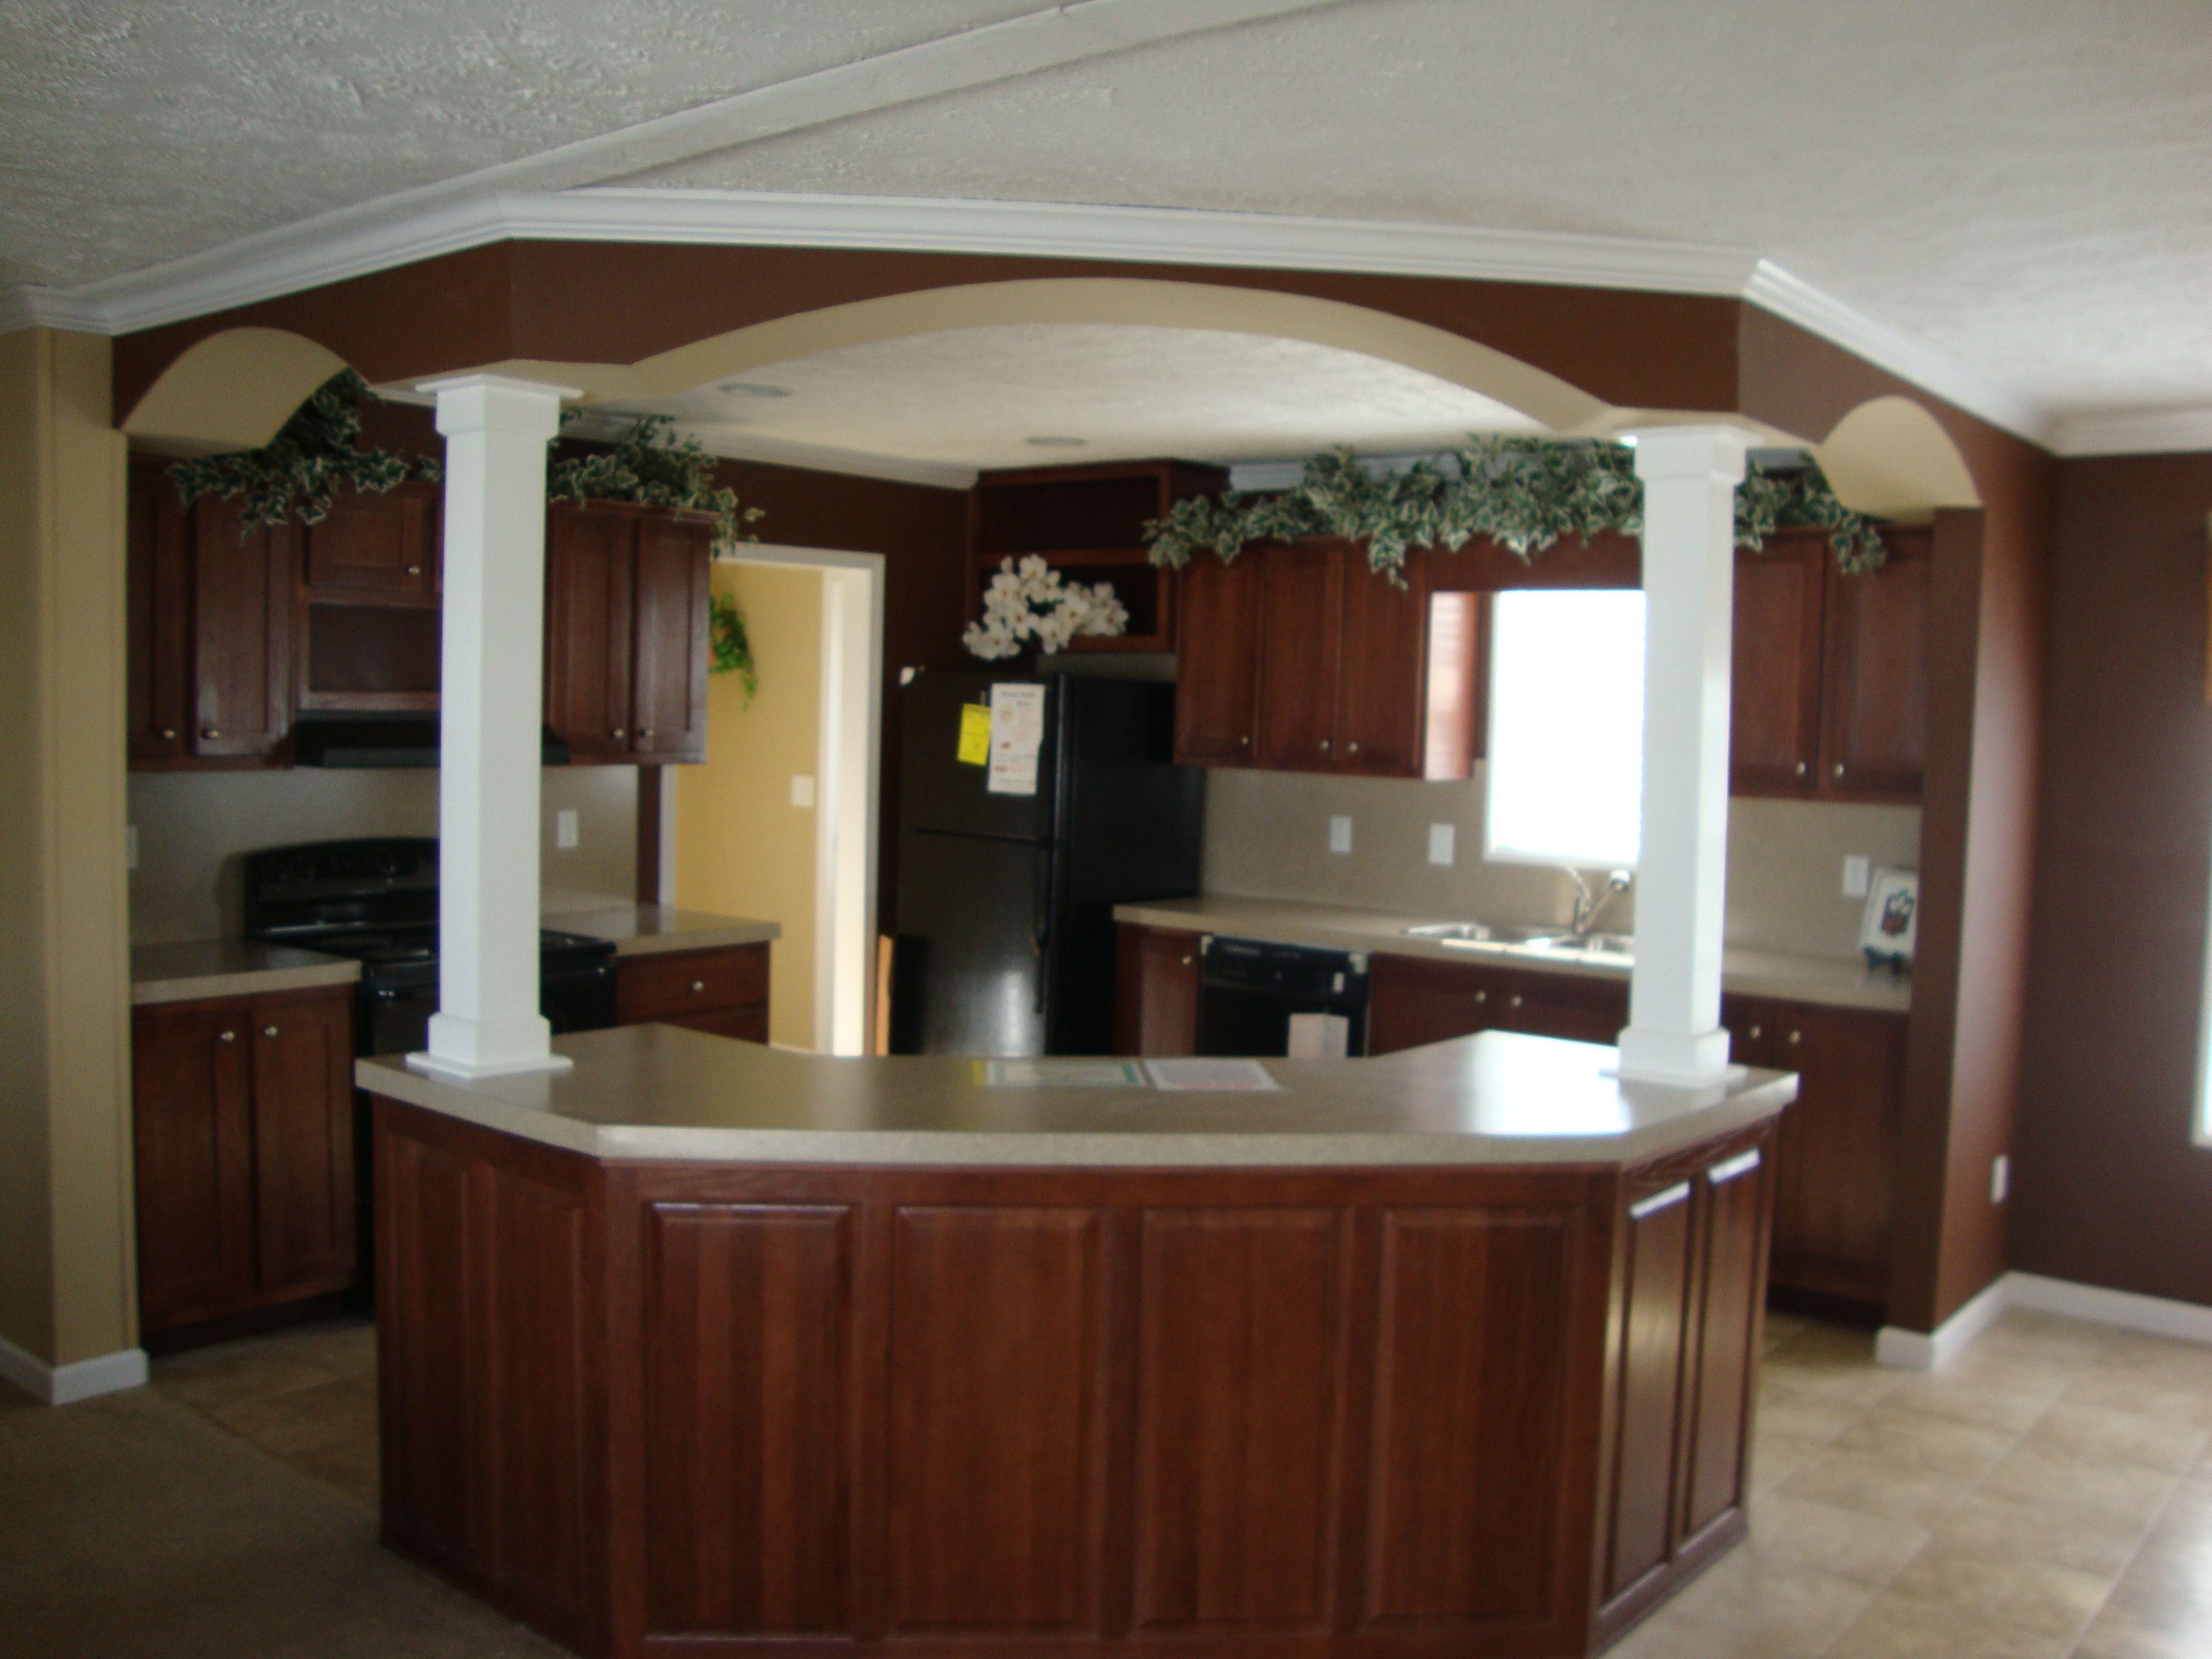 replacement kitchen cabinets for mobile homes big lots appliances woods home kitchens search